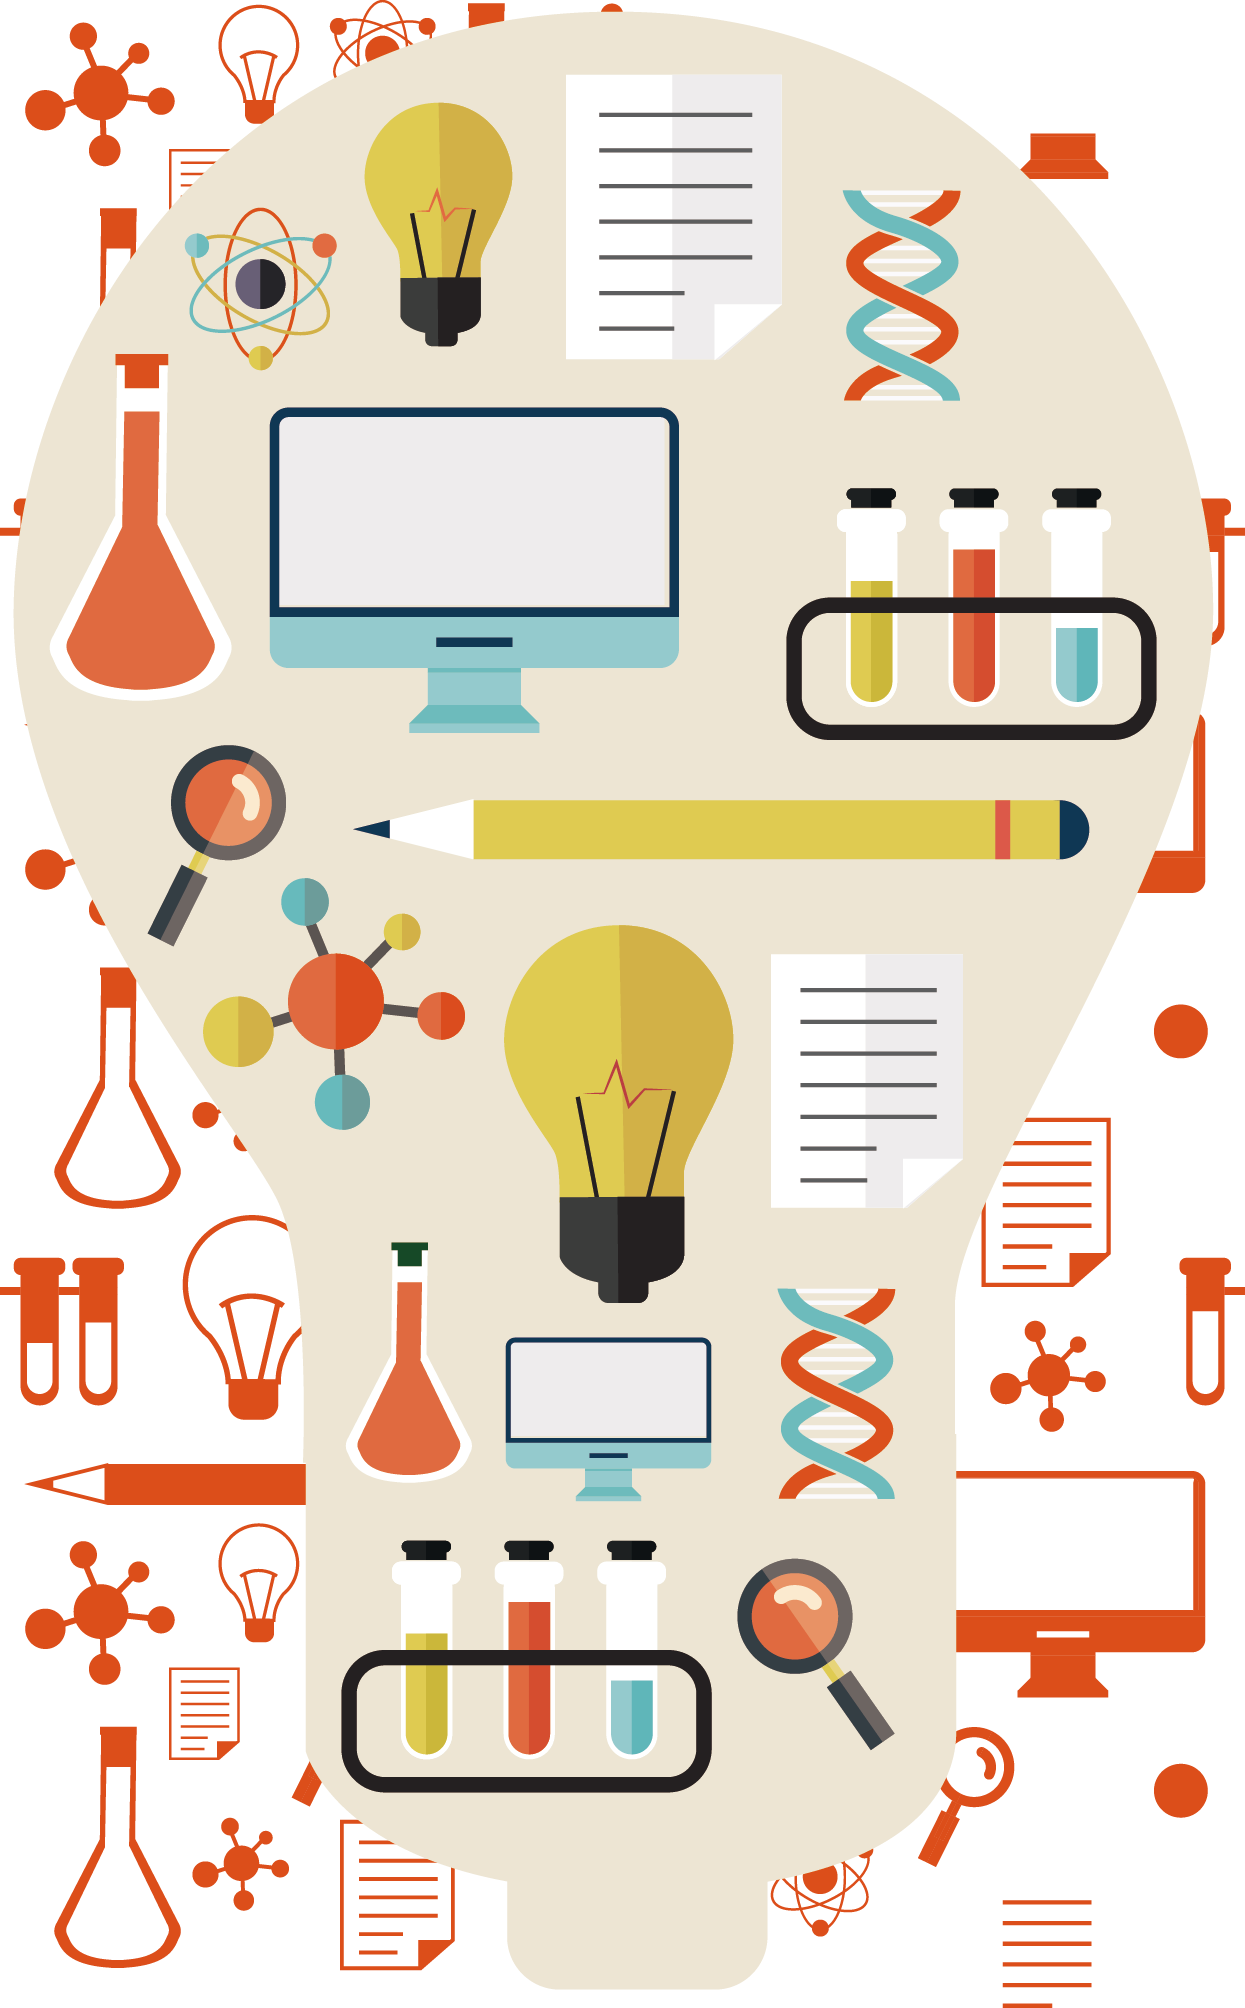 Incandescent light bulb icon. Lightbulb clipart science thing